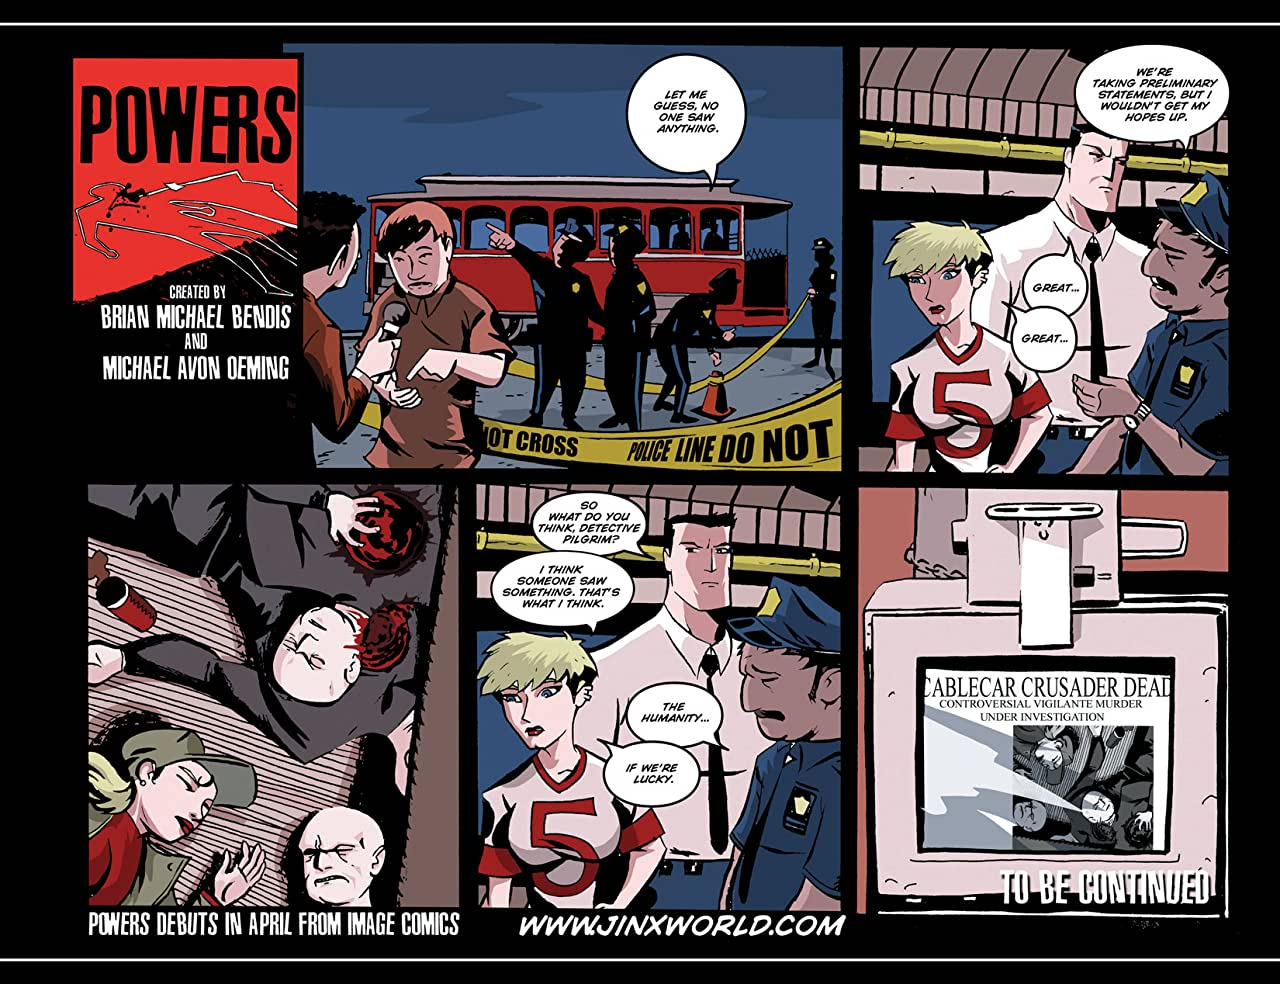 Powers Vol. 1: Who Killed Retro Girl?